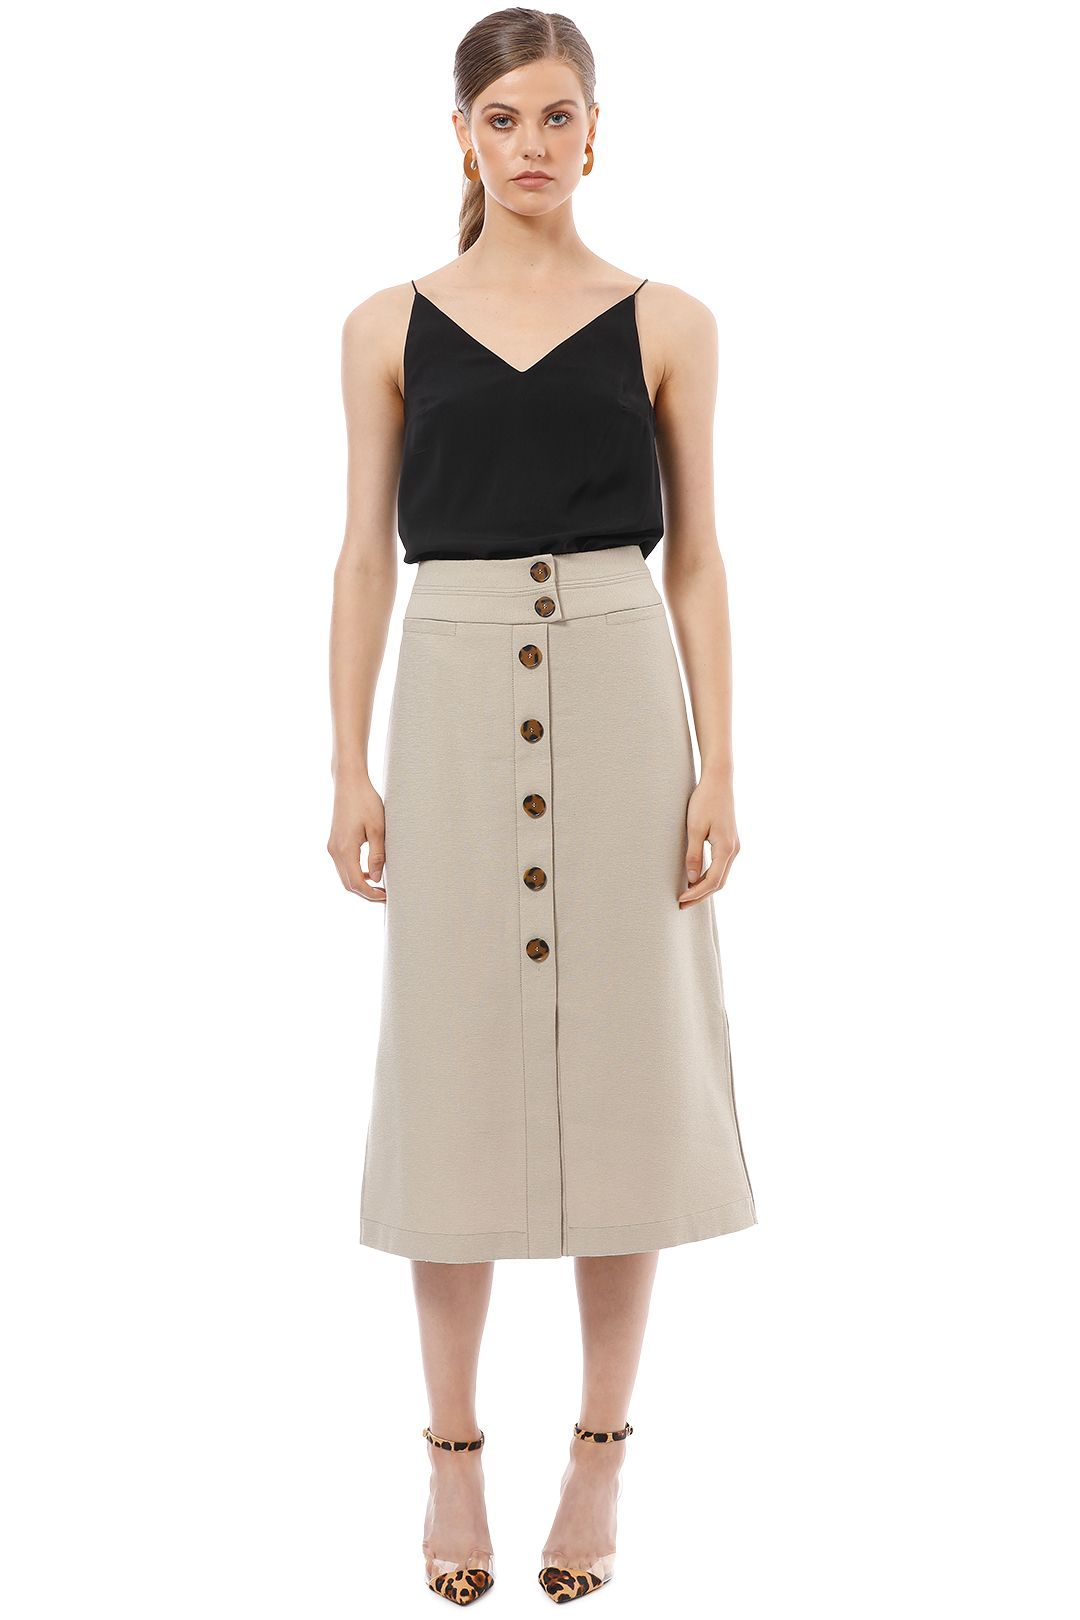 Veronika Maine - Textured Button Up Skirt - Beige - Front